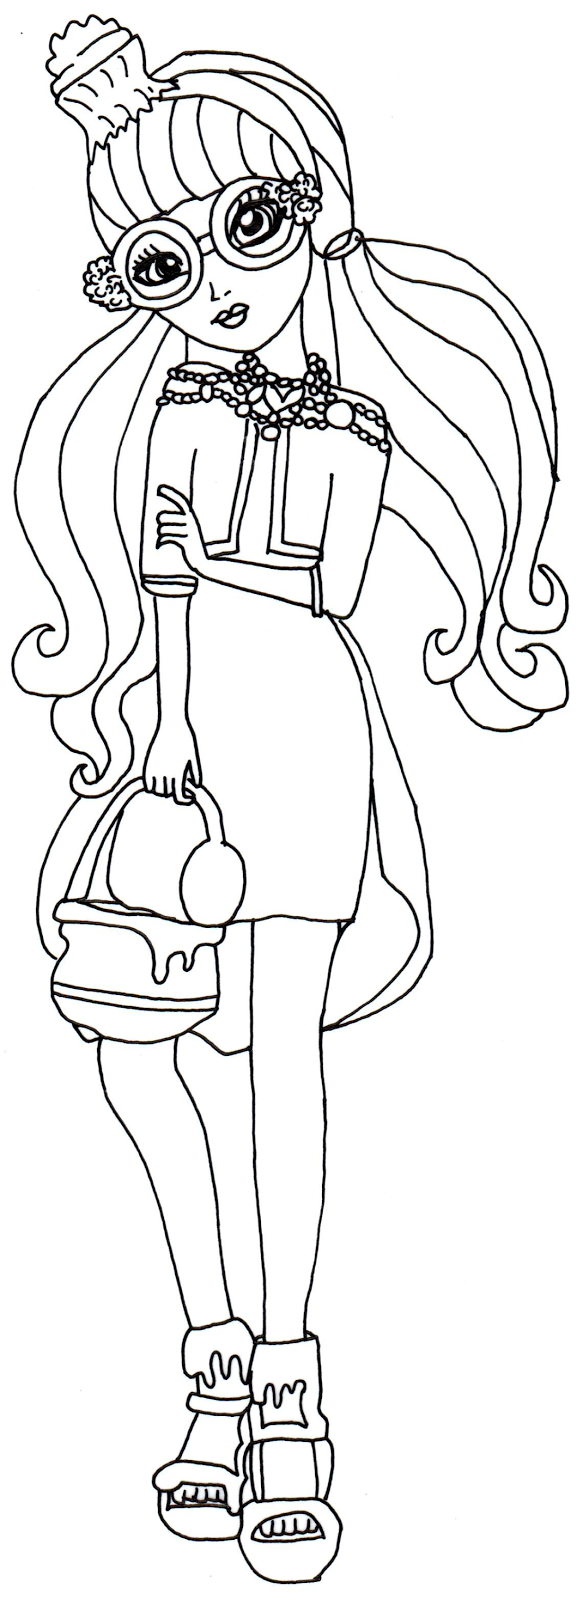 Free Printable Ever After High Coloring Pages October 2015